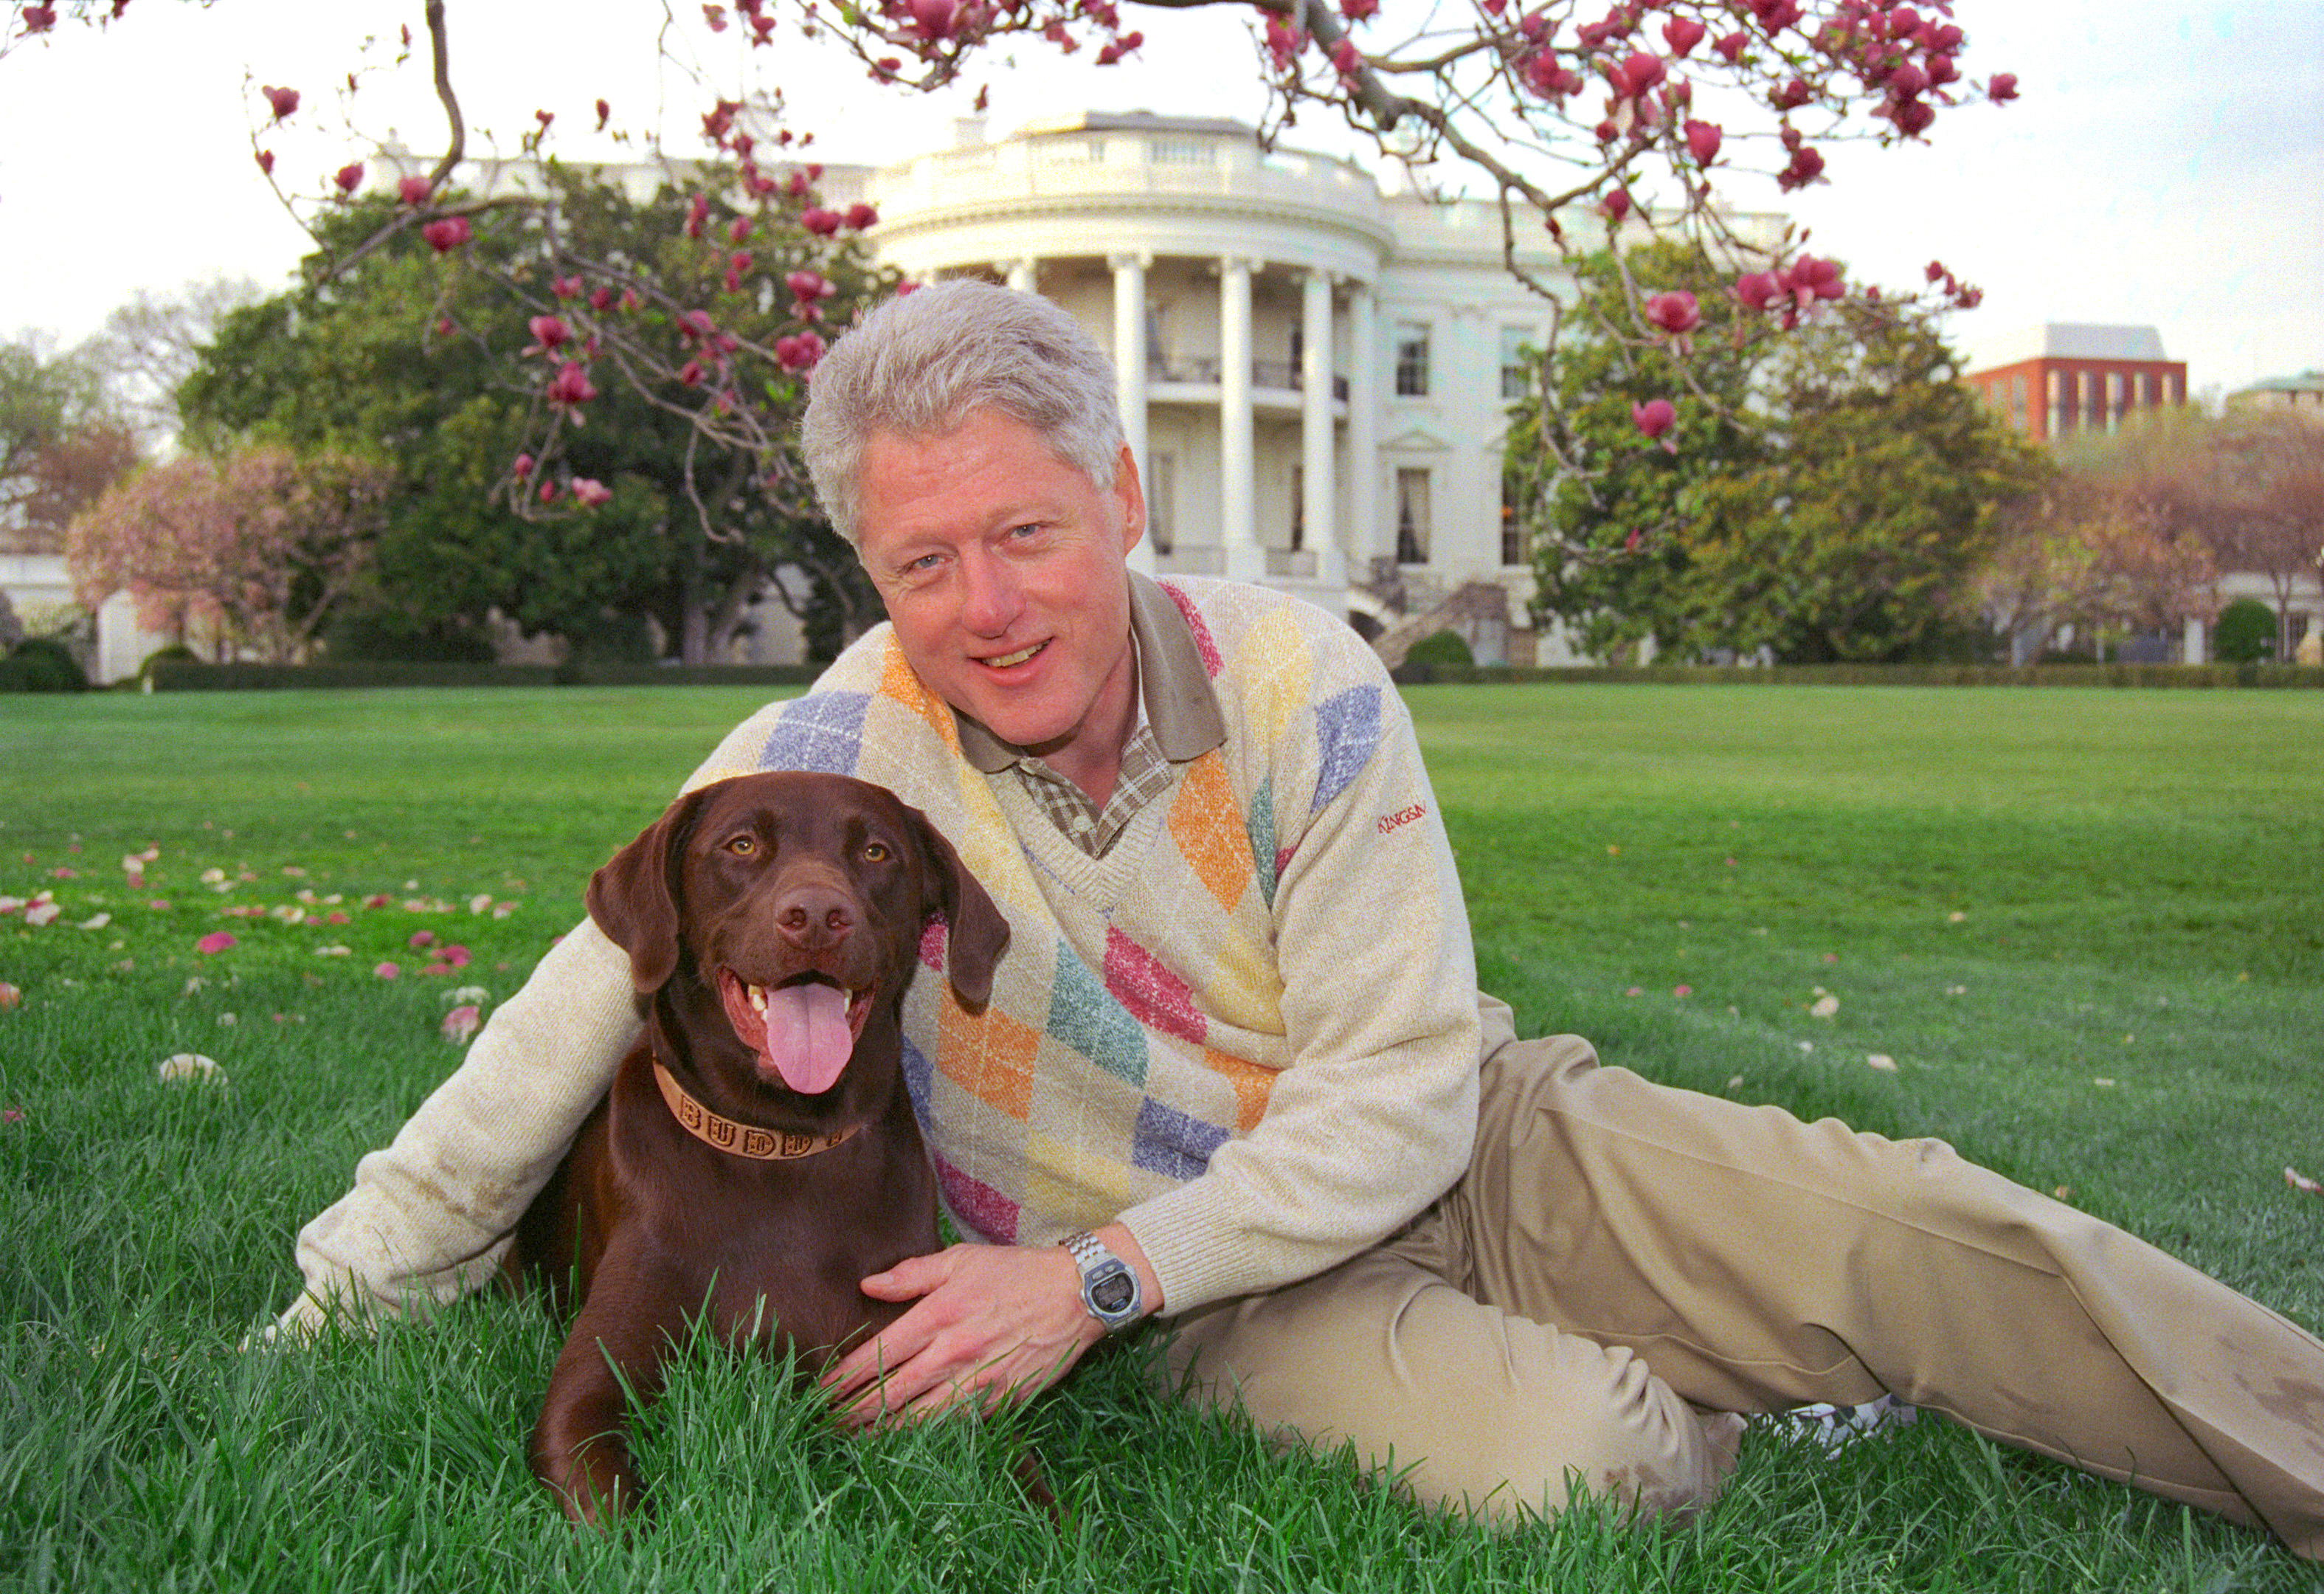 Bill Clinton with Buddy